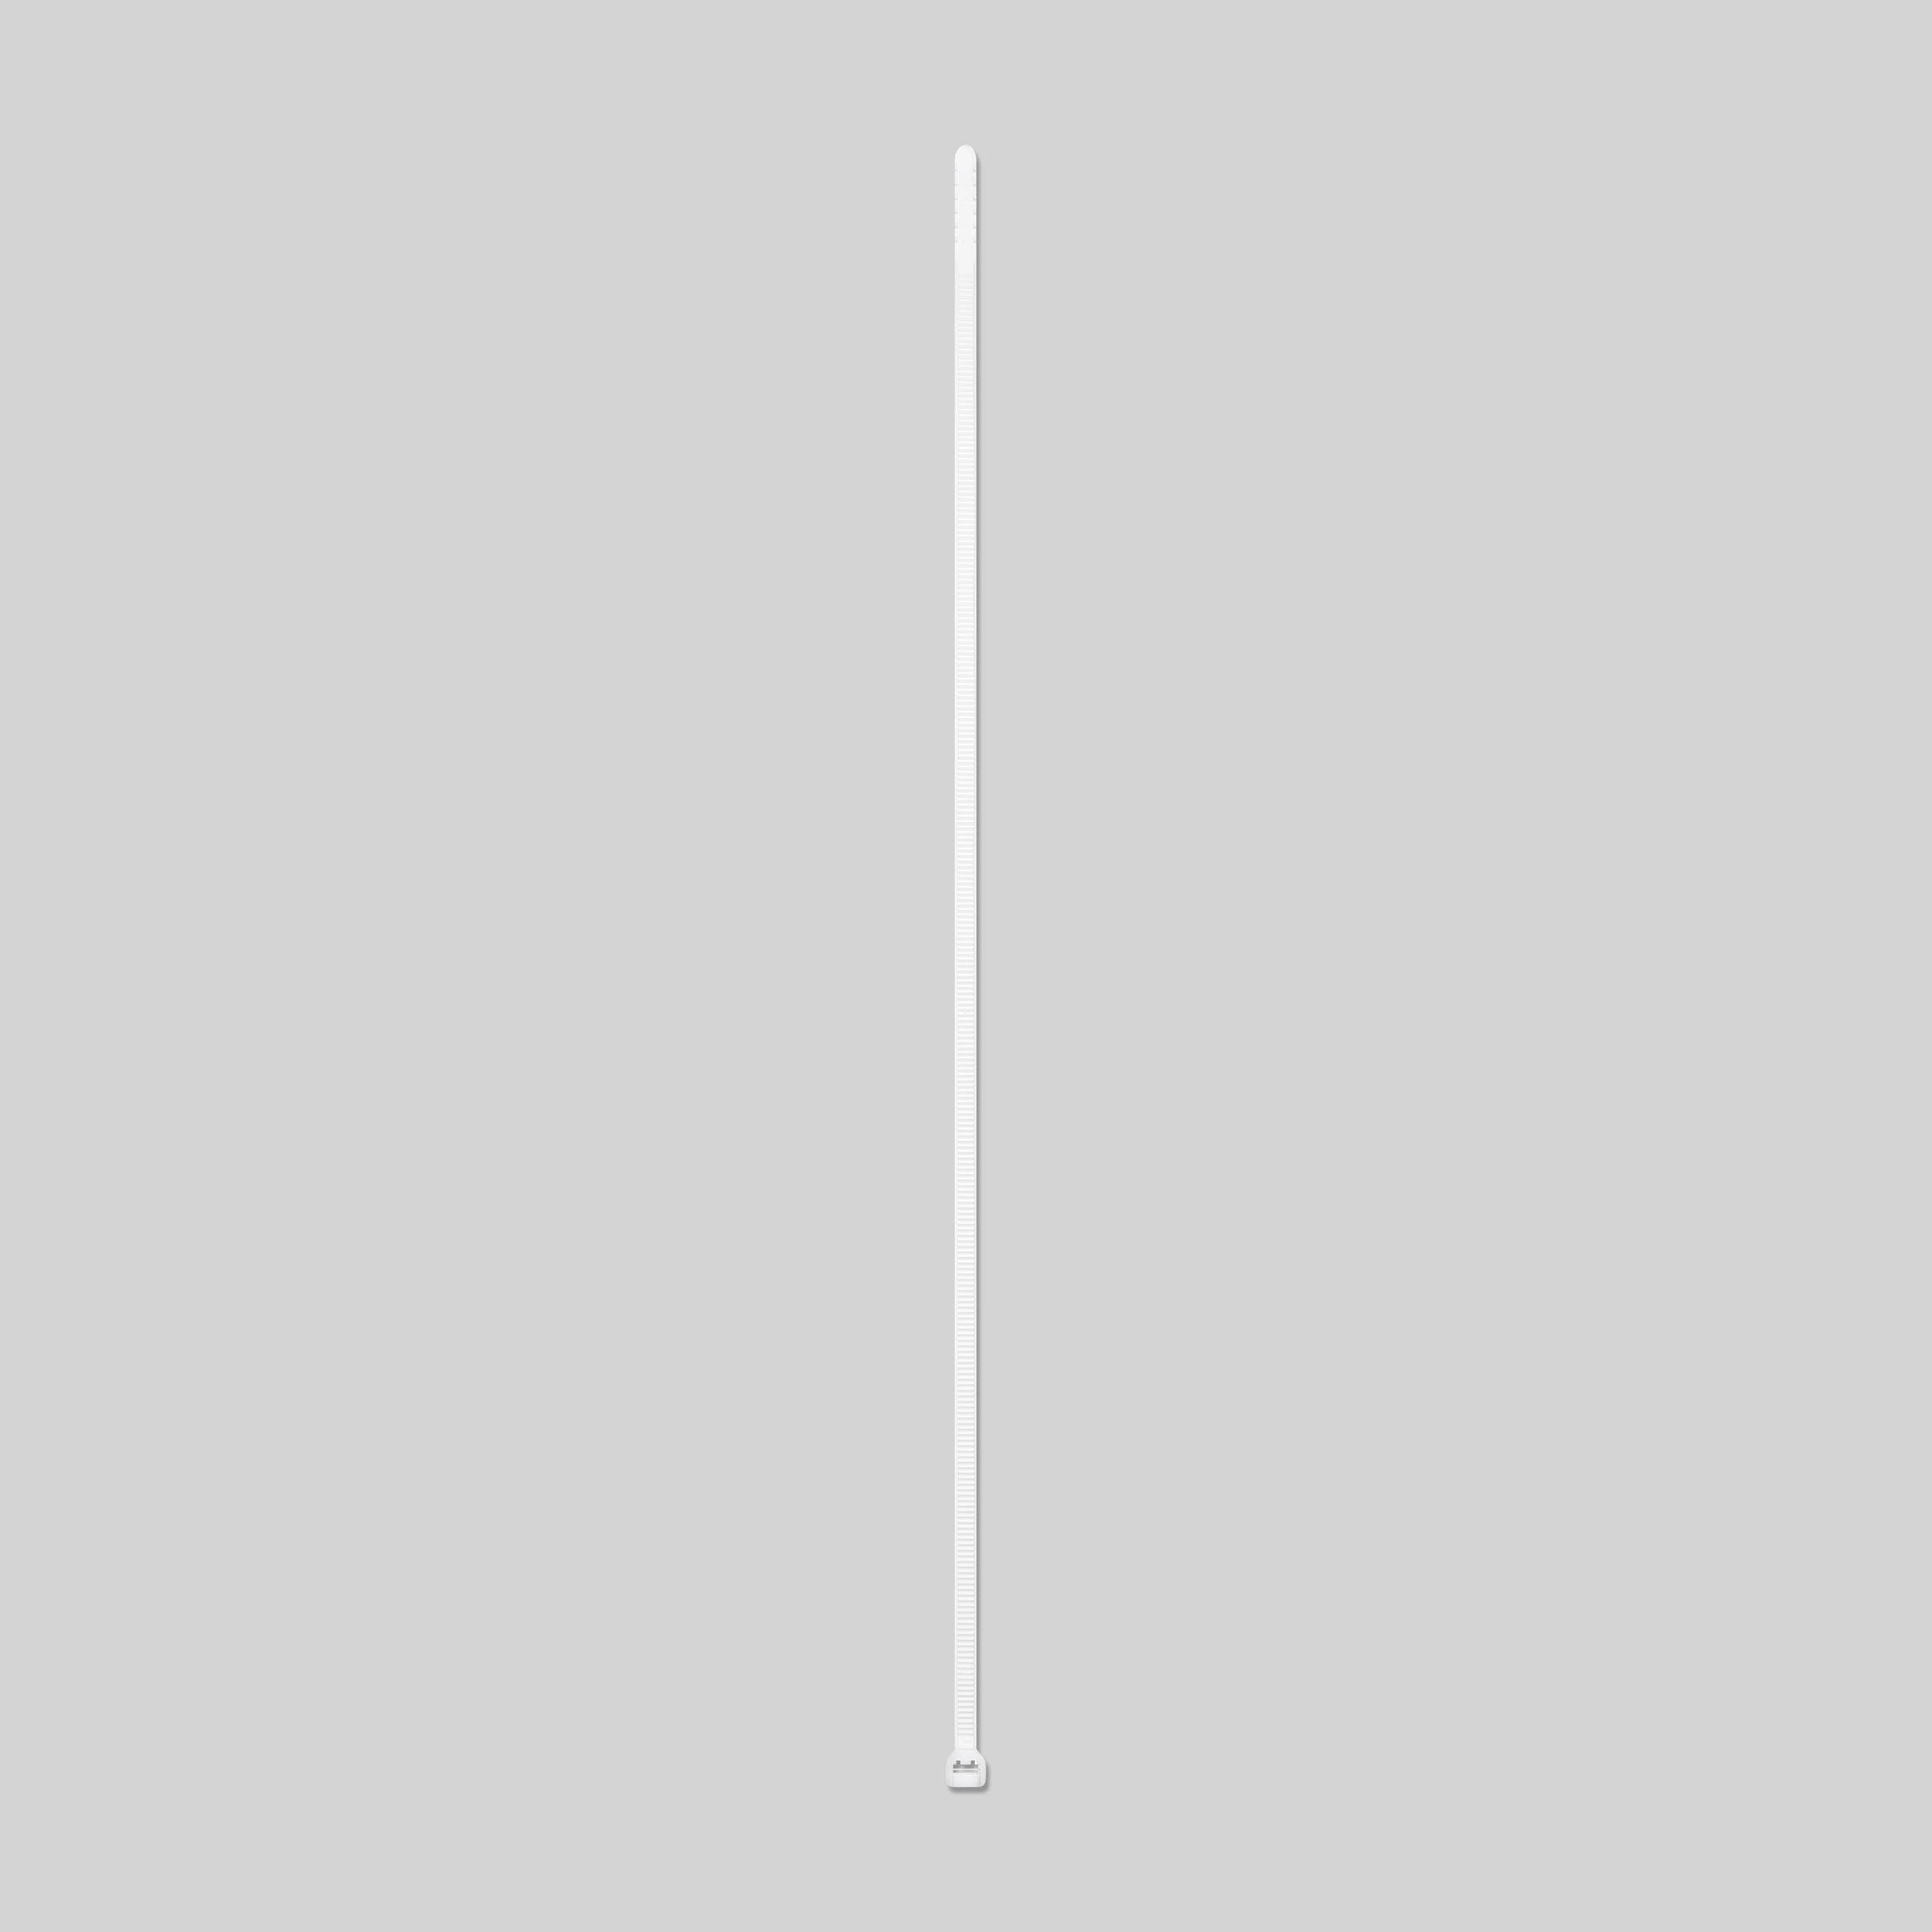 1146_Cable12_gray_background_v2